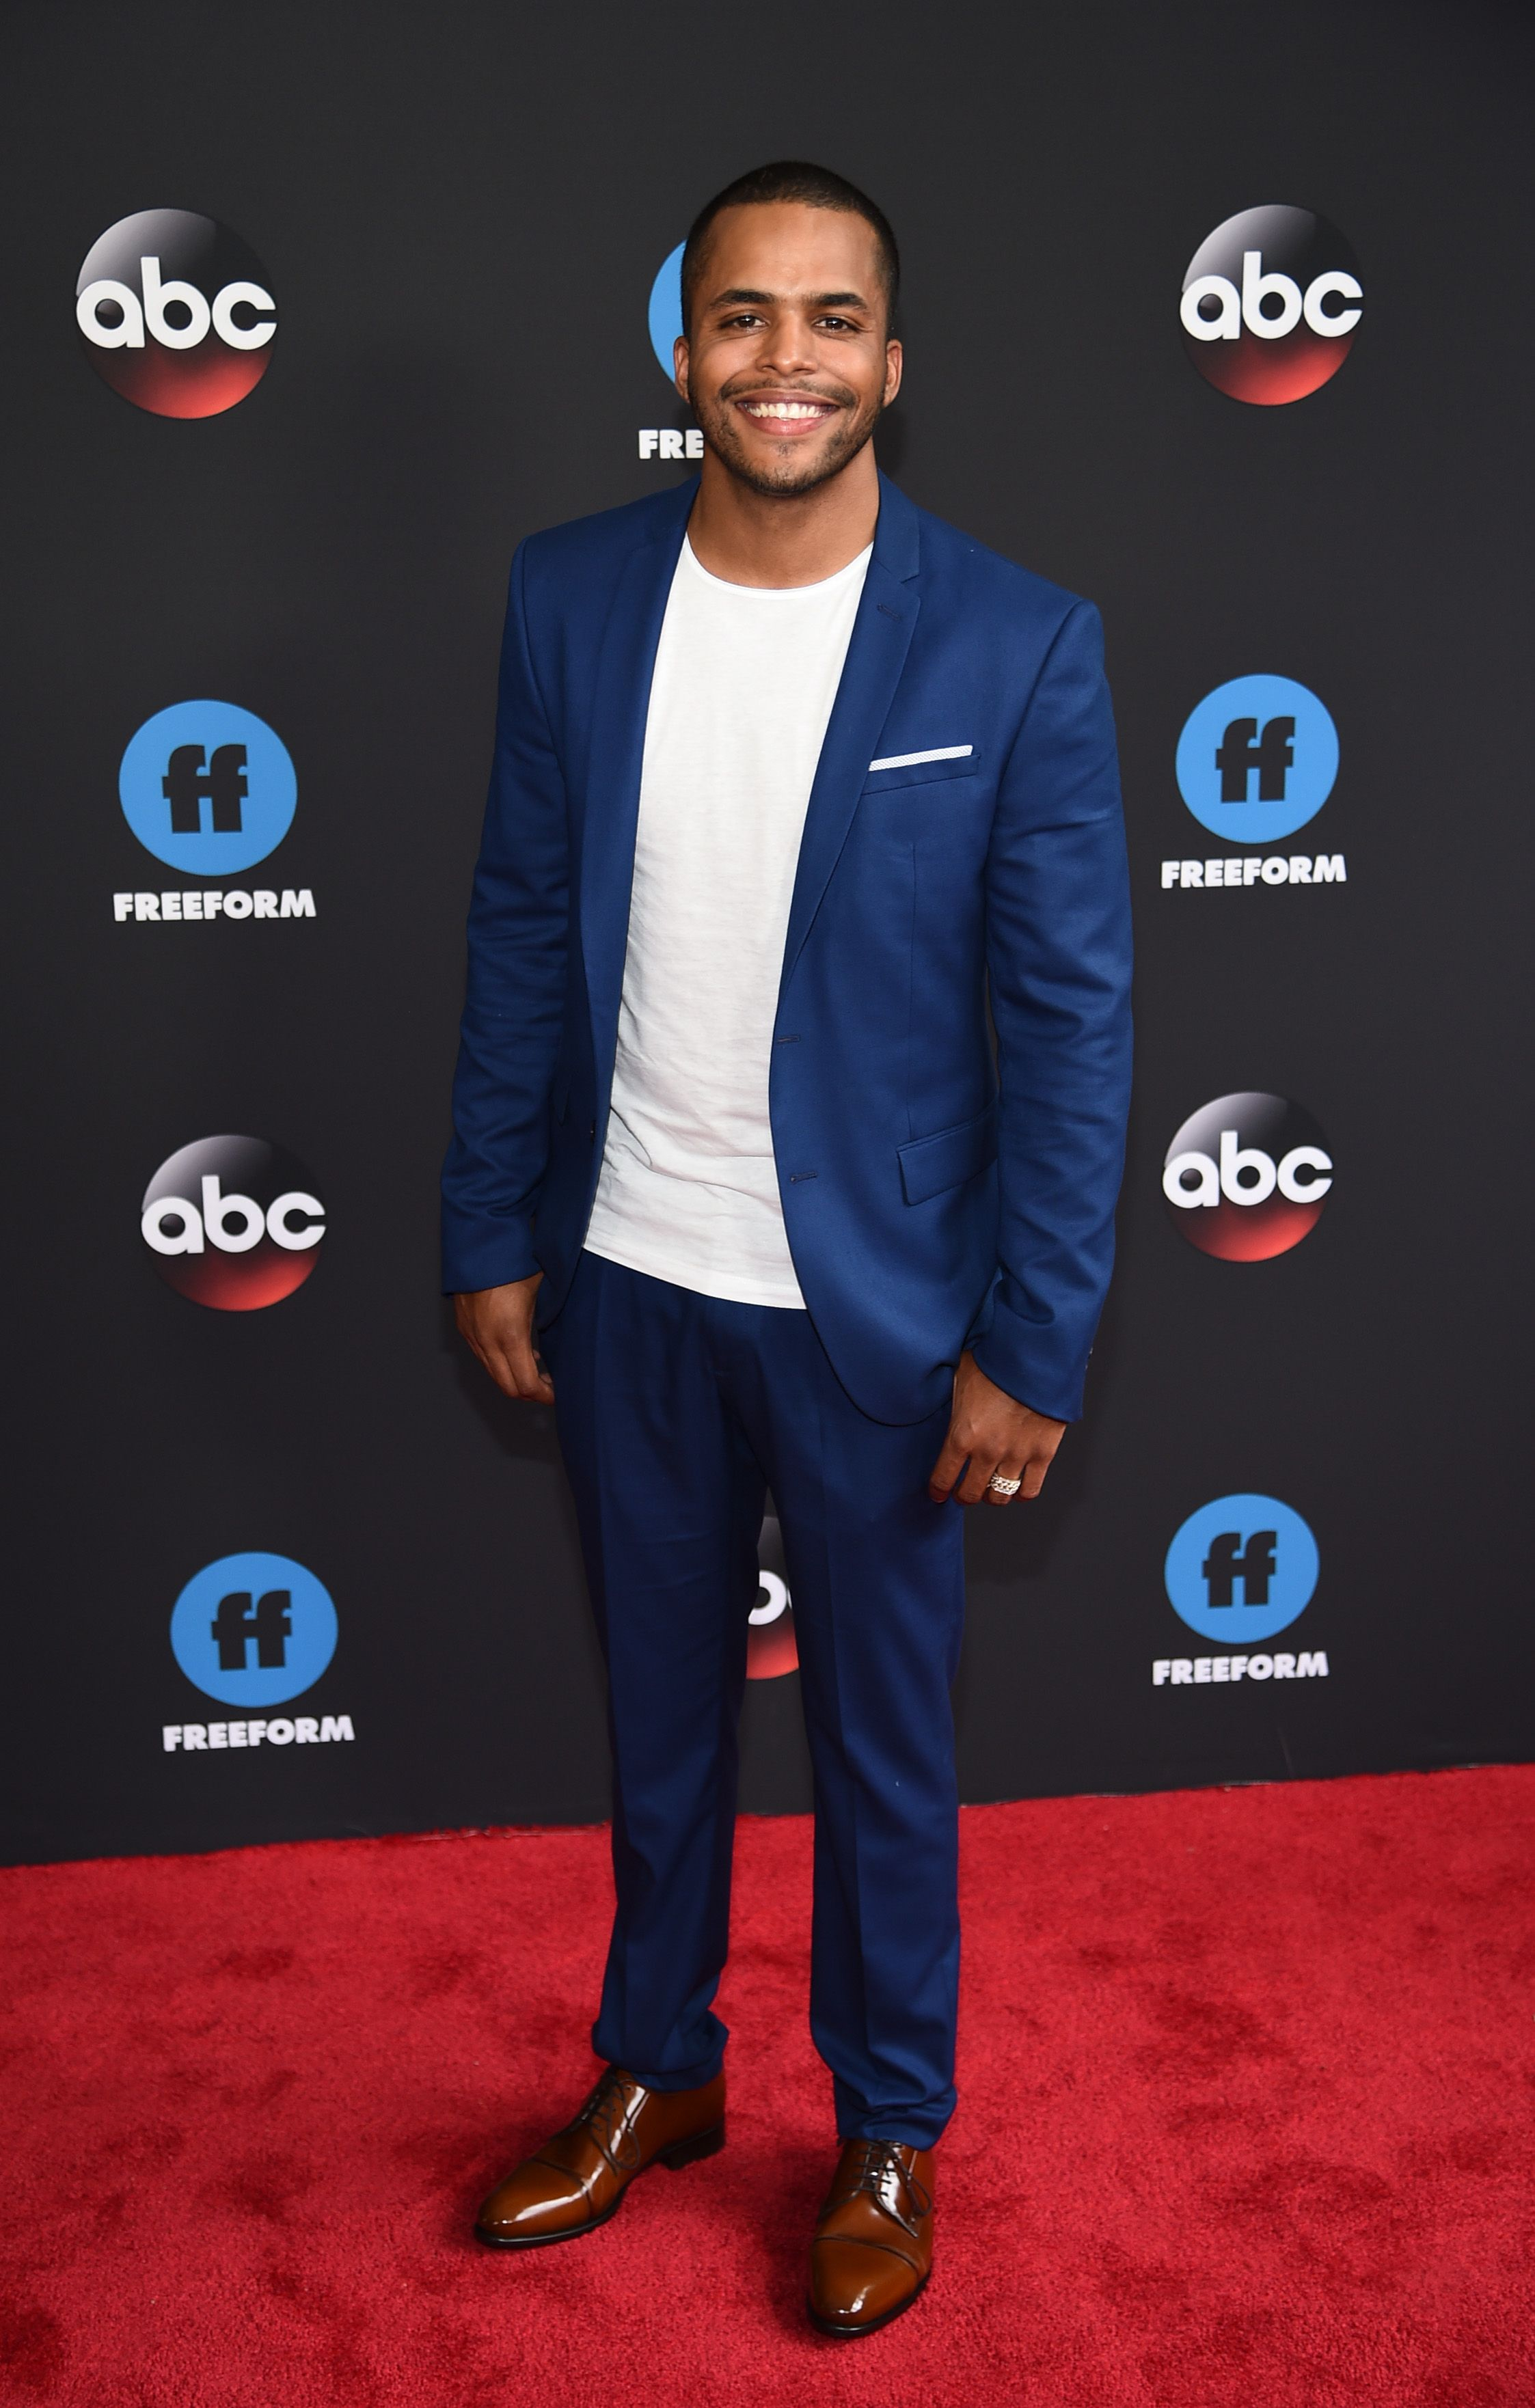 Chris Warren Jr. at the 2018 Disney, ABC, Freeform Upfront in 2018 in New York City | Source: Getty Images